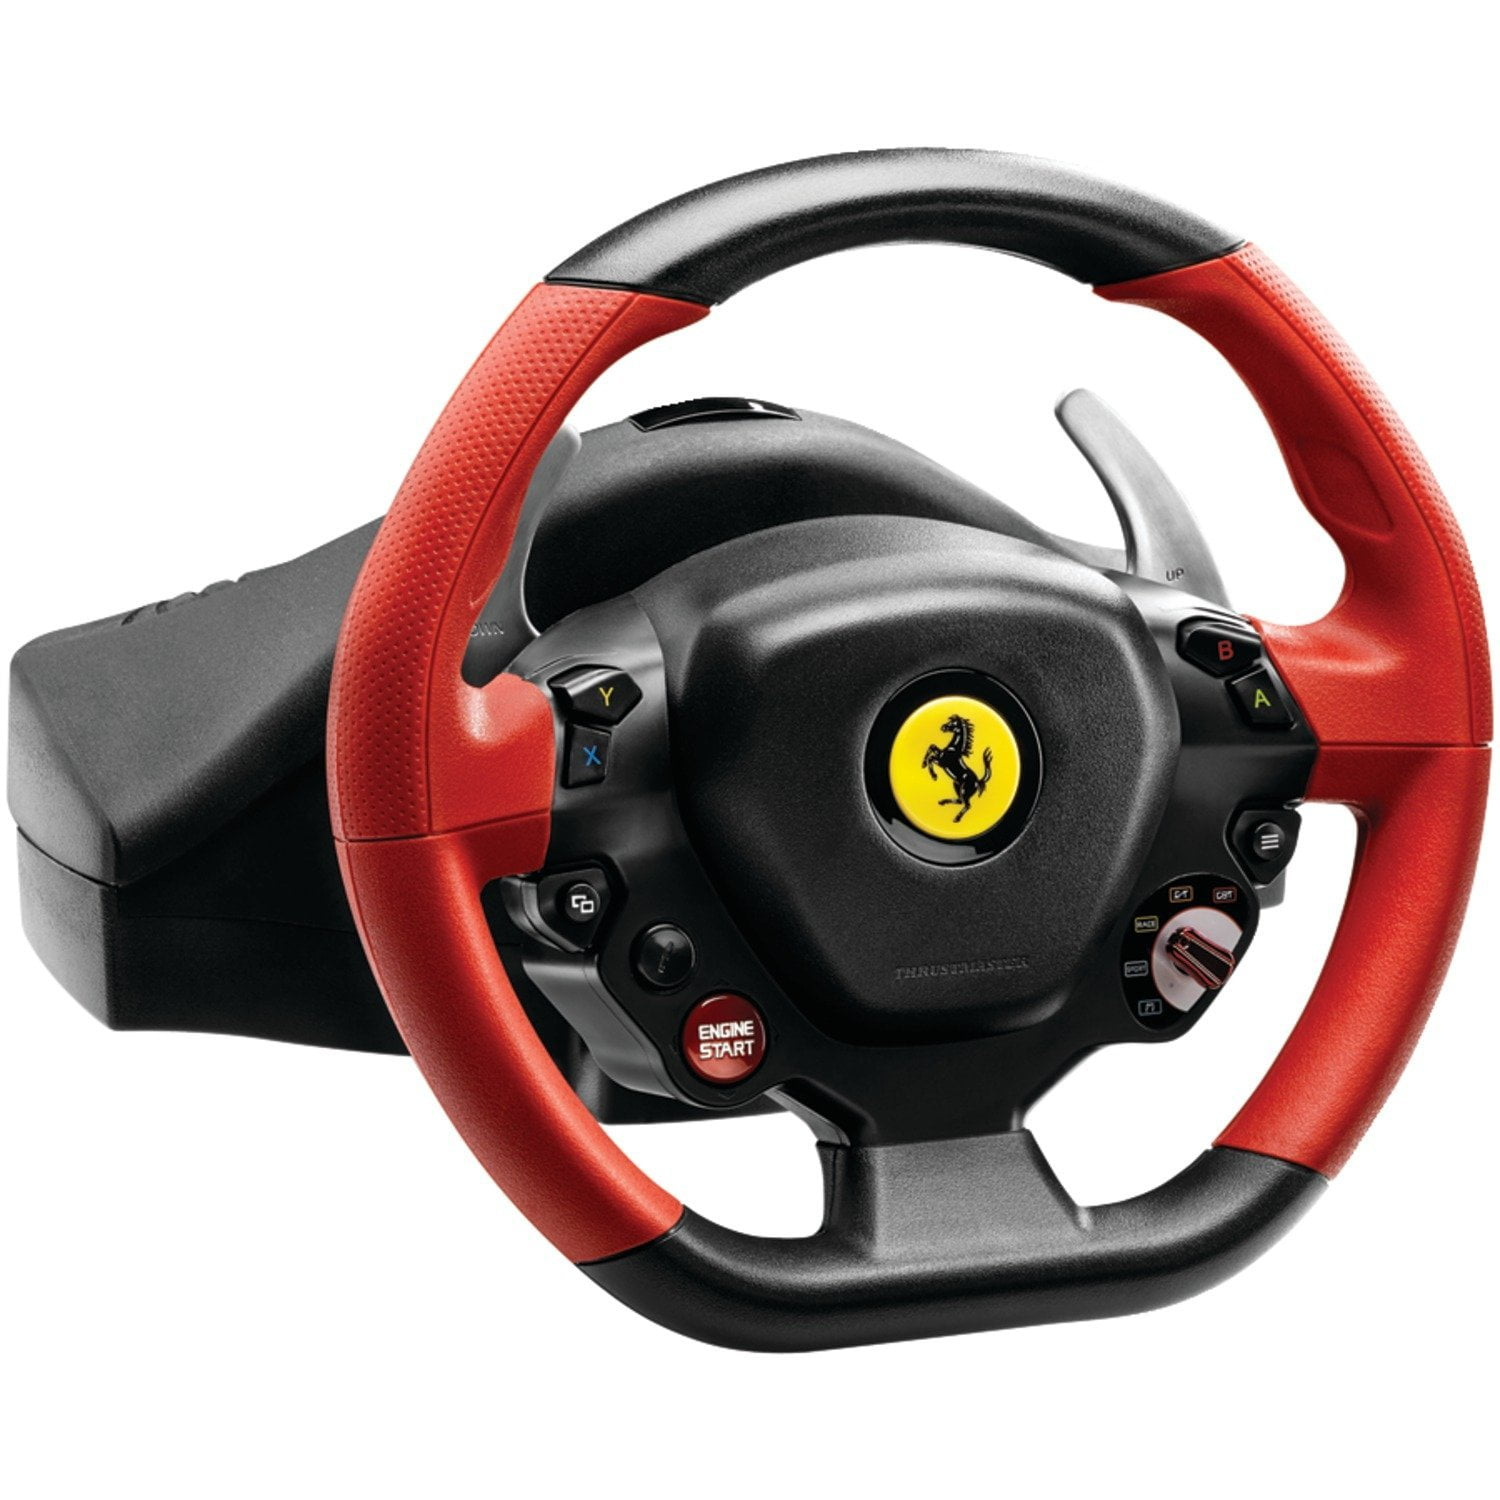 promo volant thrustmaster f458 spider pour xbox one 48. Black Bedroom Furniture Sets. Home Design Ideas